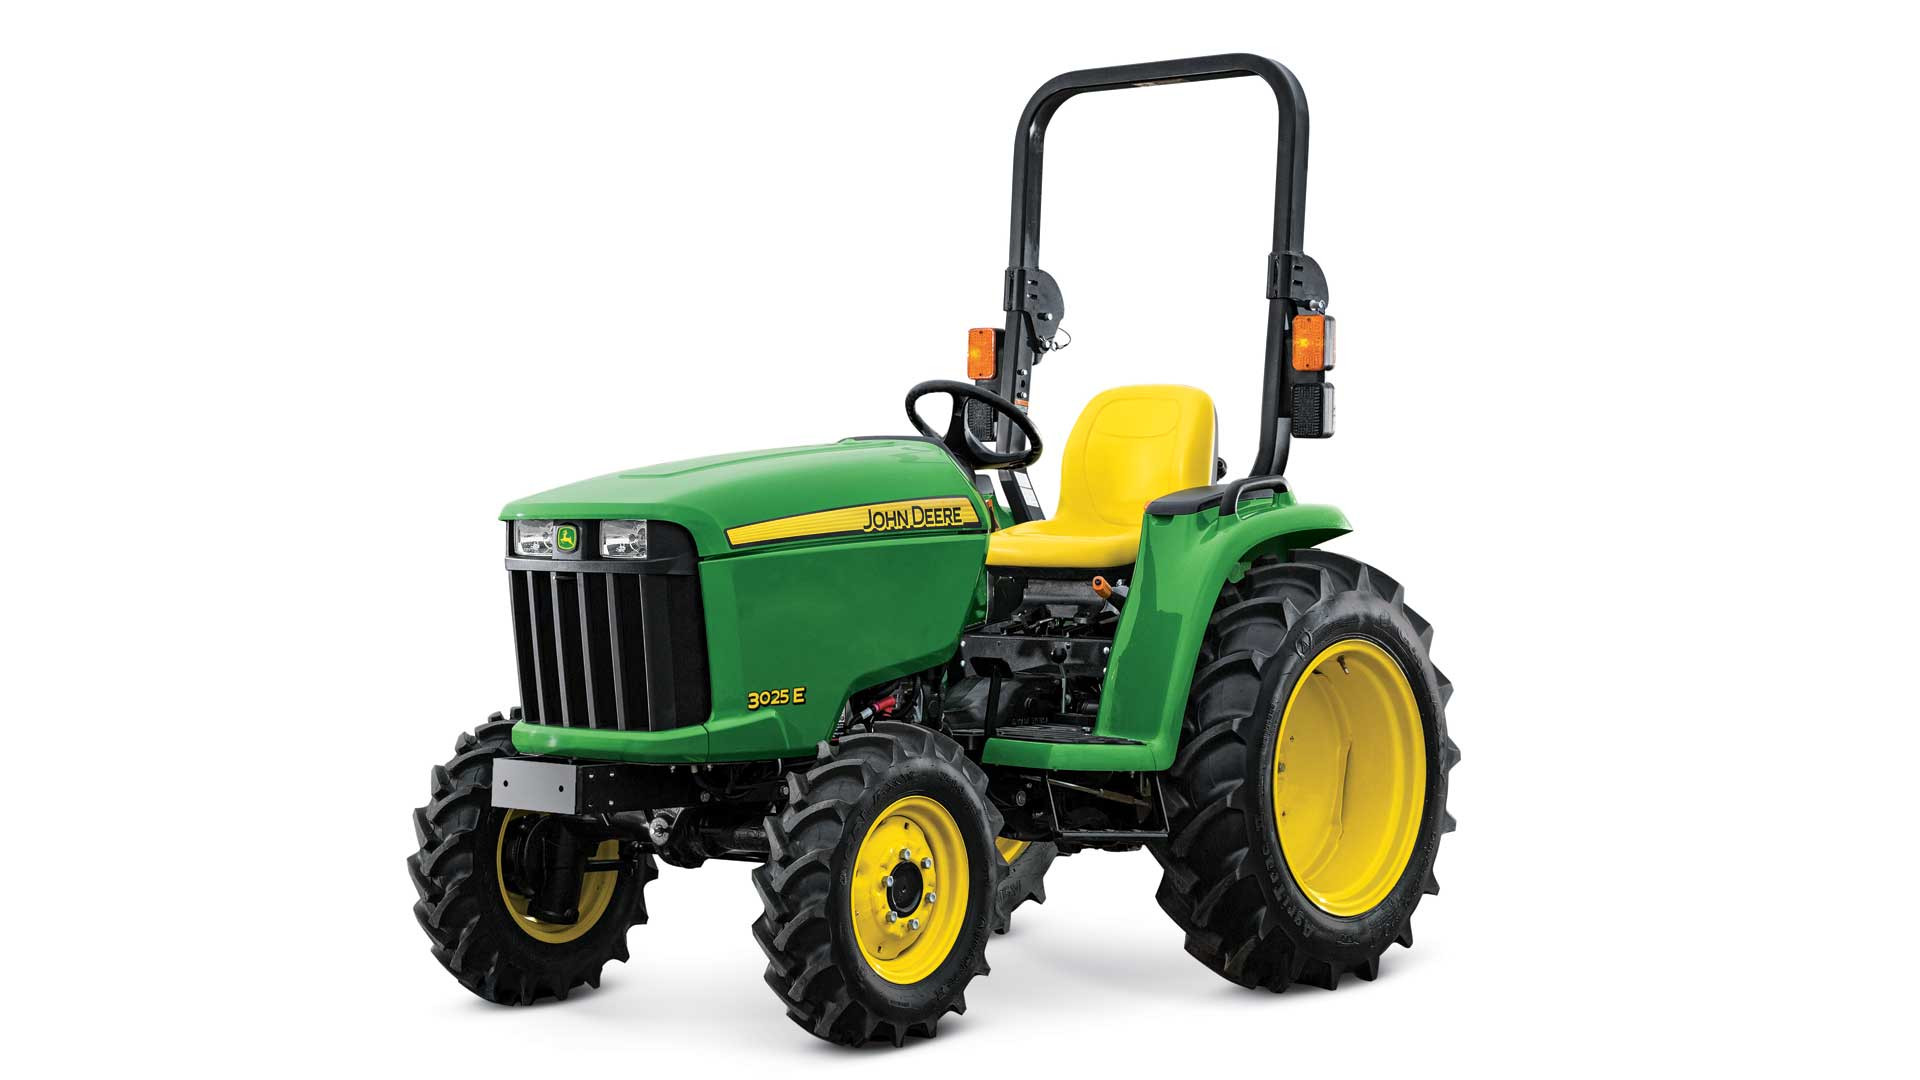 John Deere Ausmalbilder Frisch the Best Free John Deere Vector Images Download From 50 Free Bilder